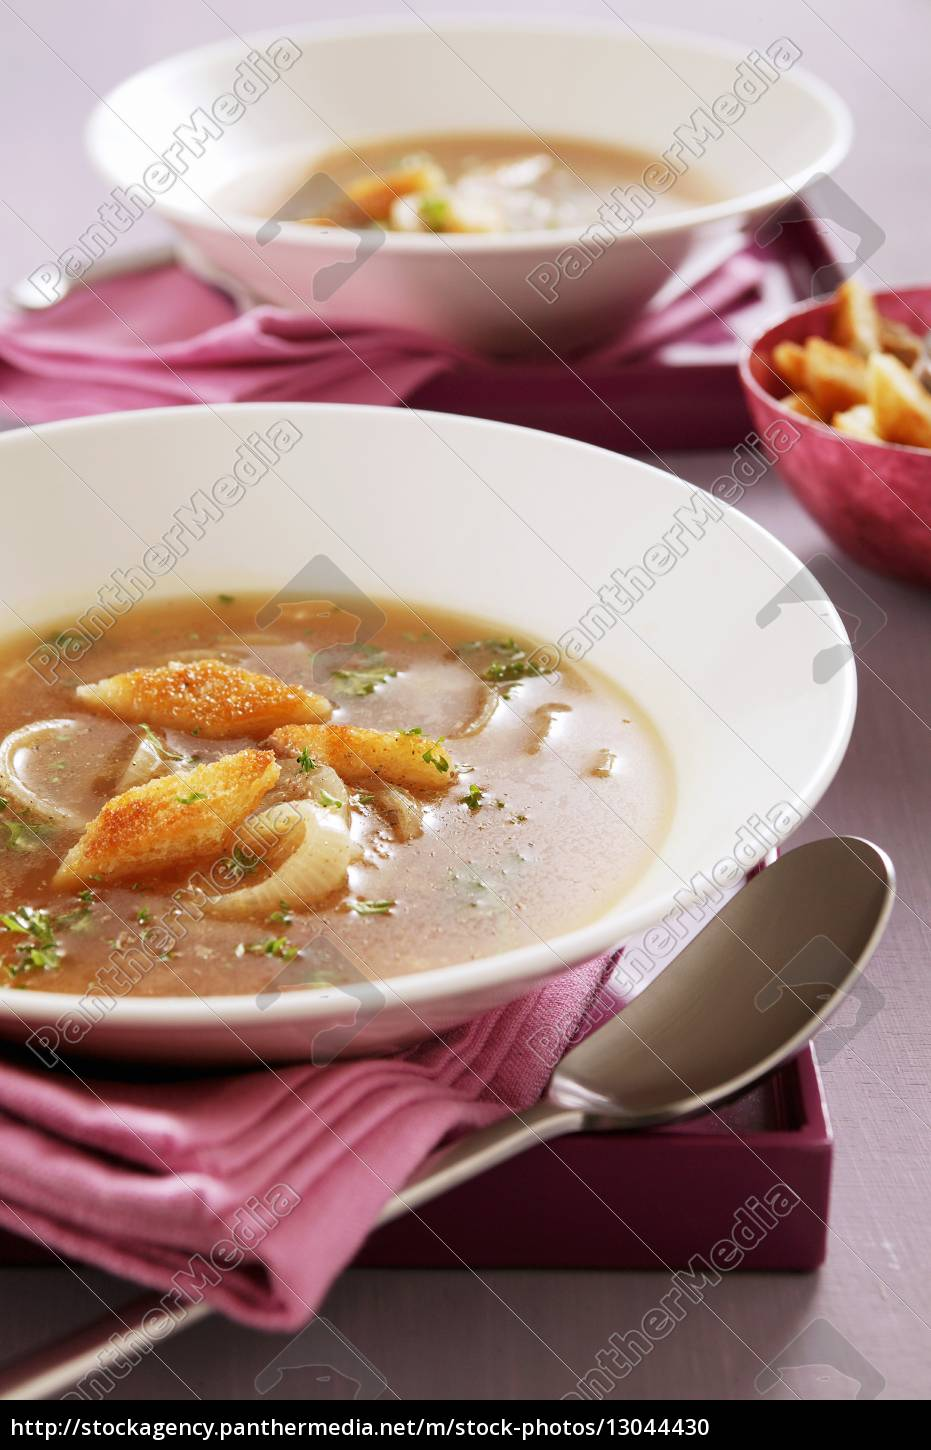 Appetiser, Appetizer, Blurred background, Crouton, Cuisine, Dish - 13044430